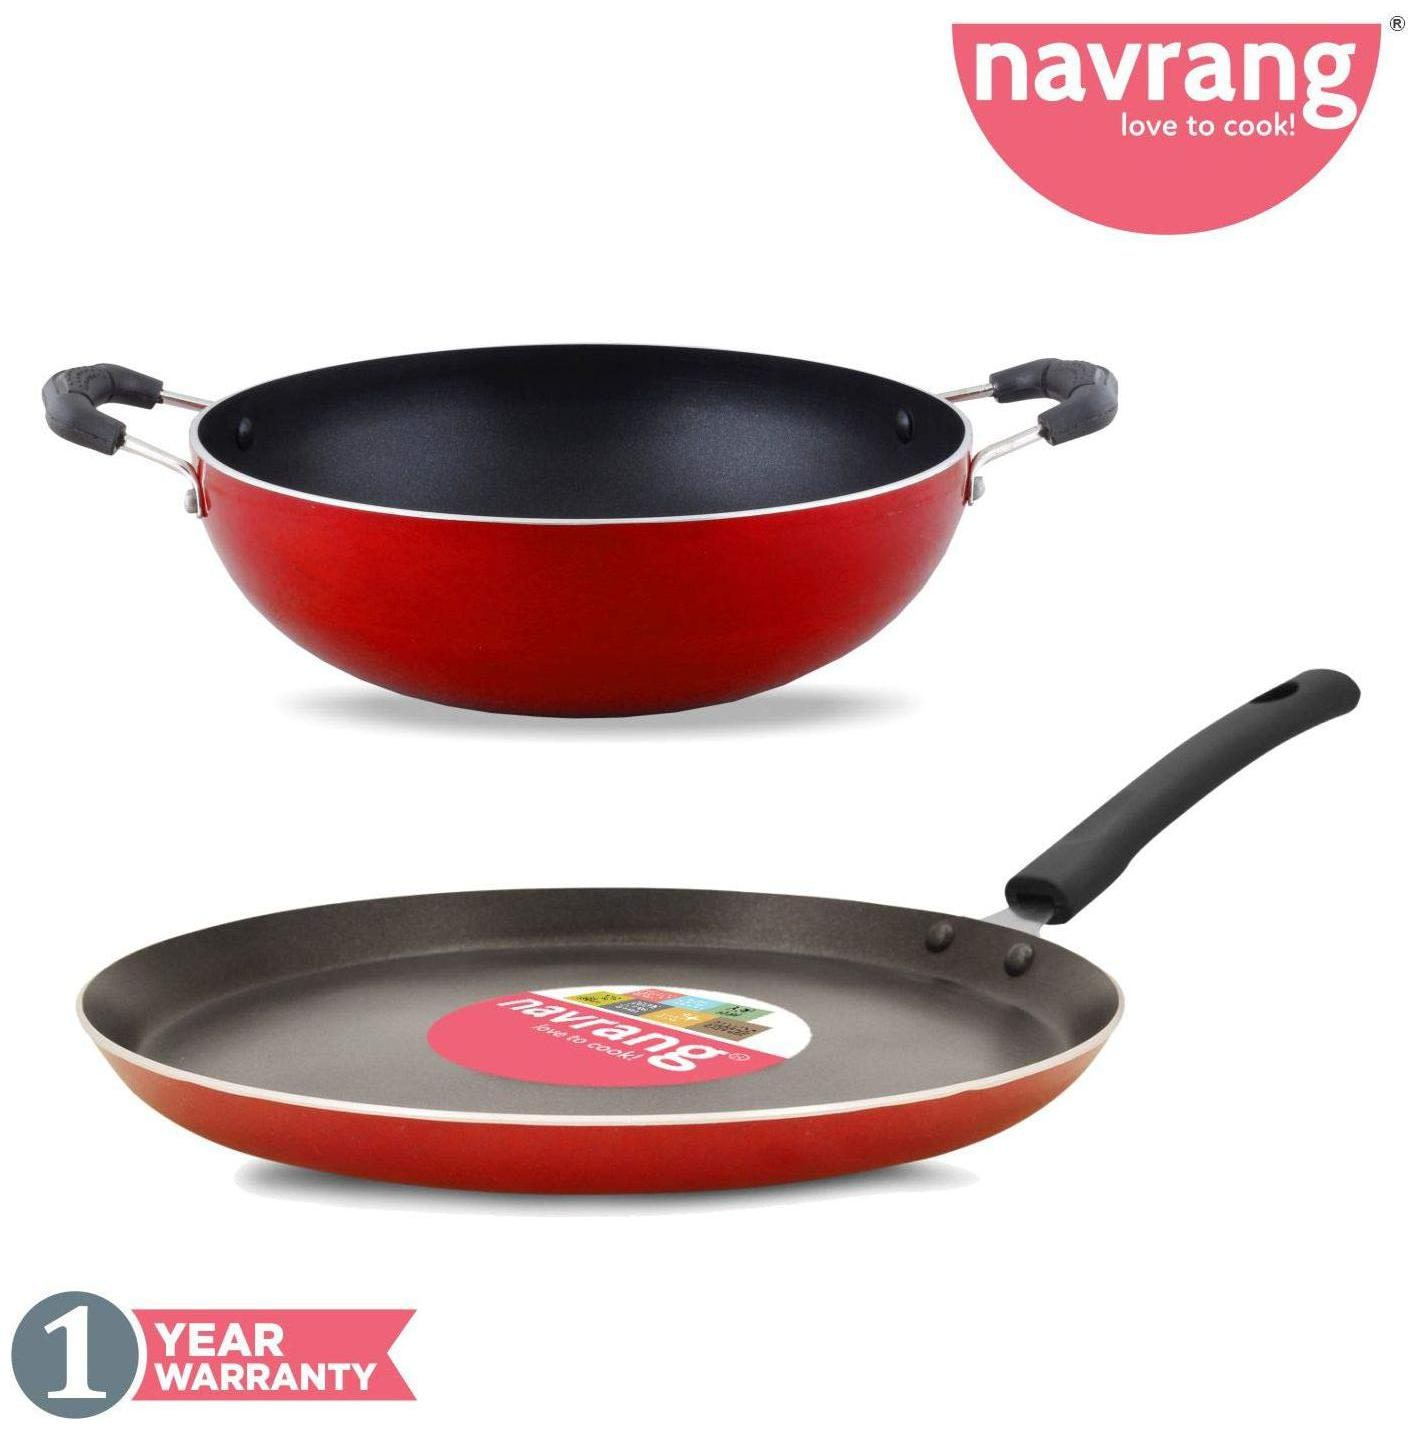 Navrang Nonstick Aluminum Cookware Set;Tawa 275 + Kadai 230;Red-Set of 2